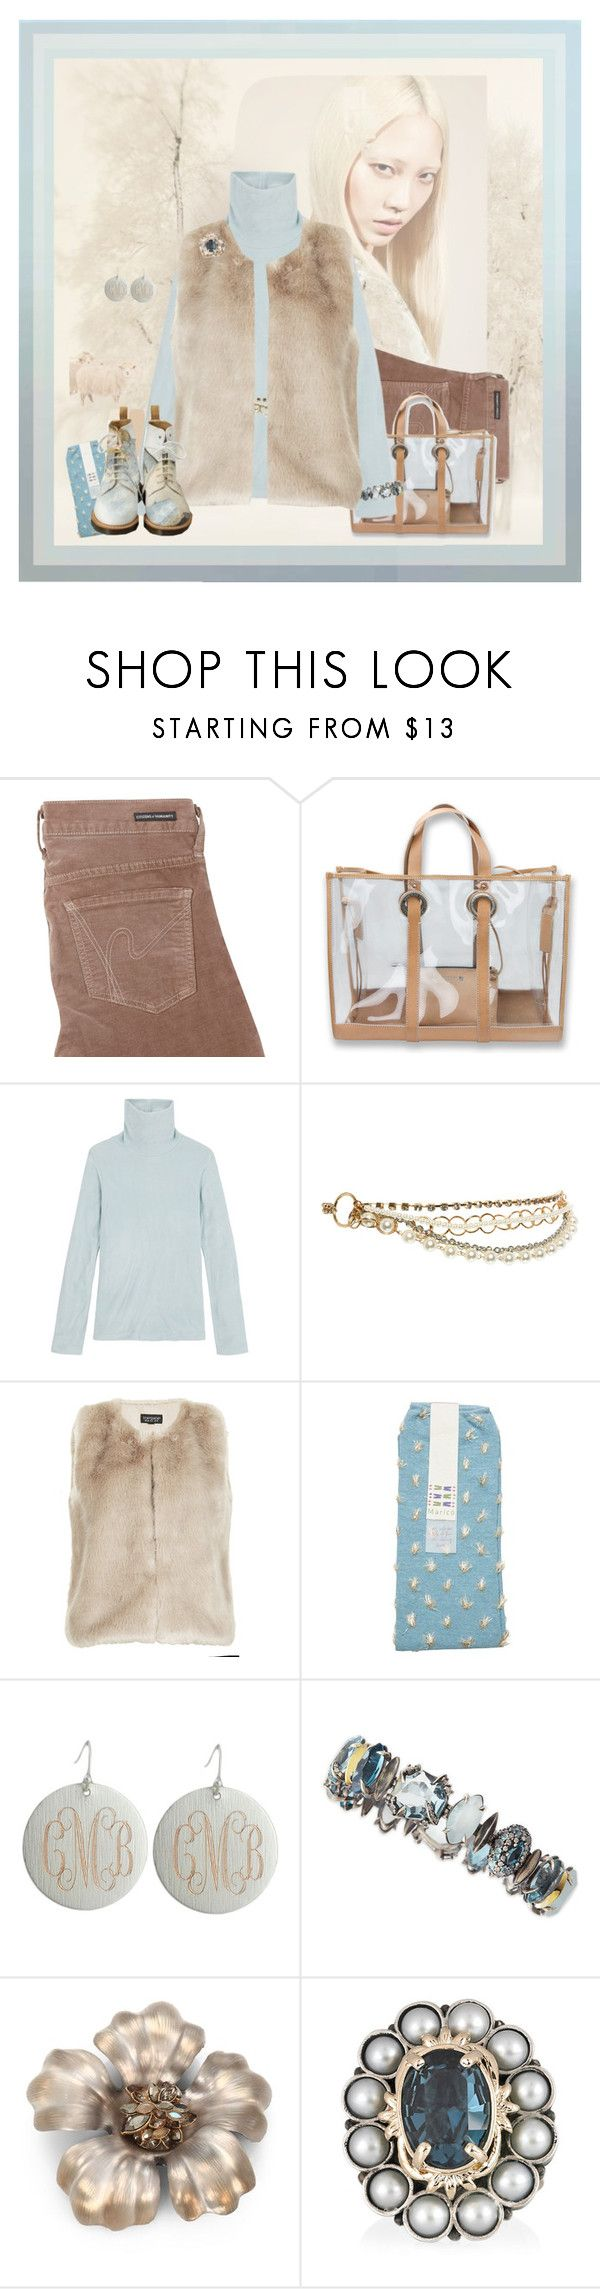 """Vested Interest"" by halebugg ❤ liked on Polyvore featuring Citizens of Humanity, Sperry Top-Sider, Uniqlo, New Look, Topshop, Maria La Rosa, Alexis Bittar and Mawi"